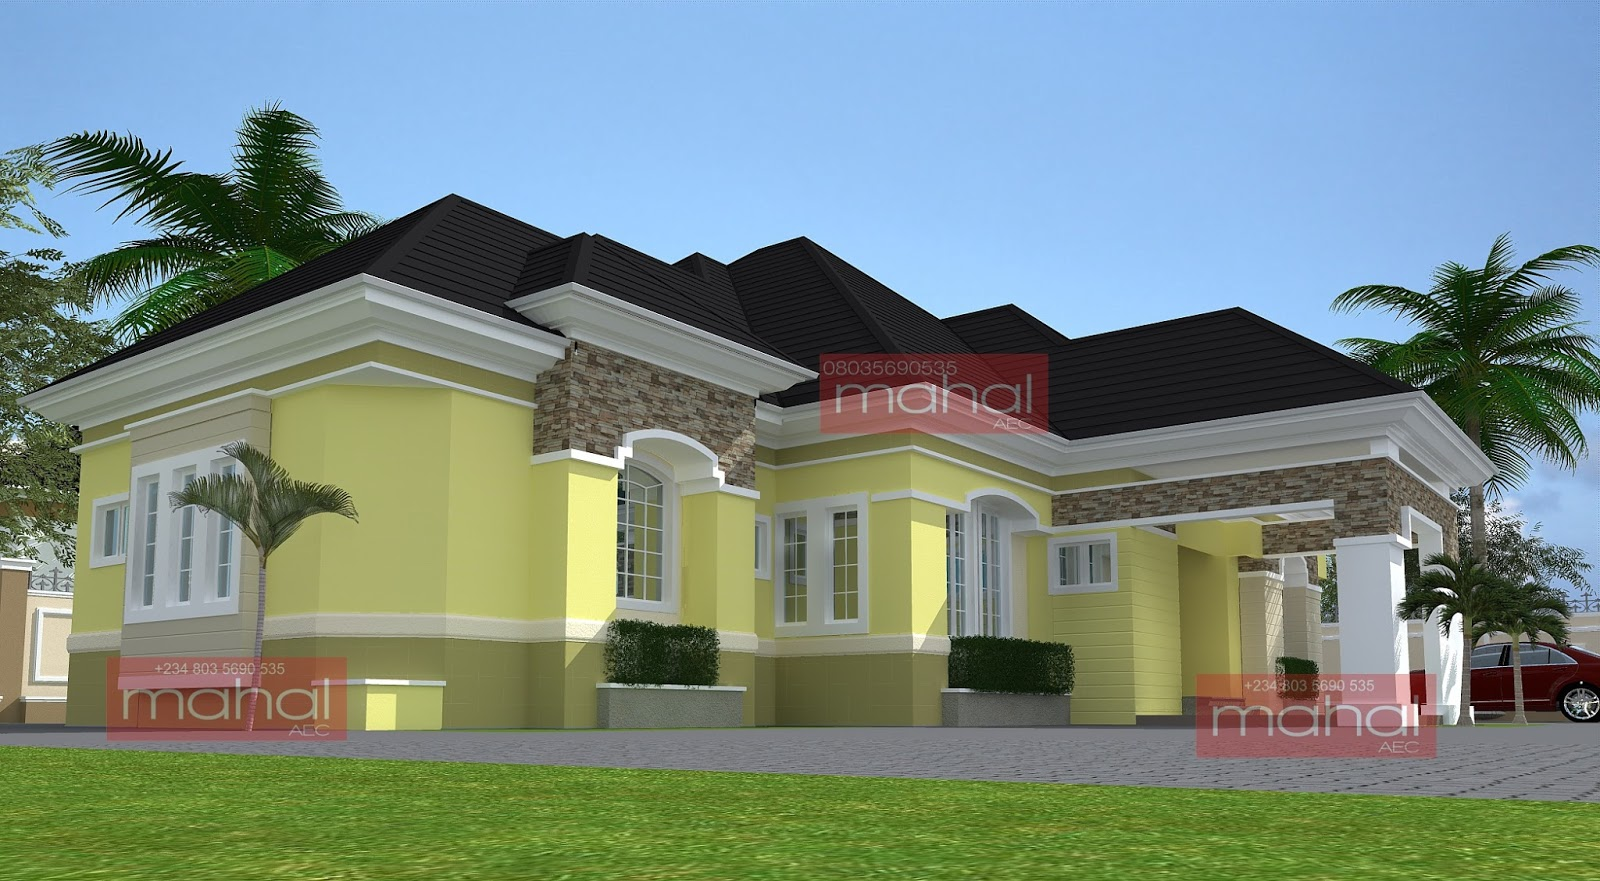 Contemporary nigerian residential architecture iyeu otuo for Nigerian architectural designs